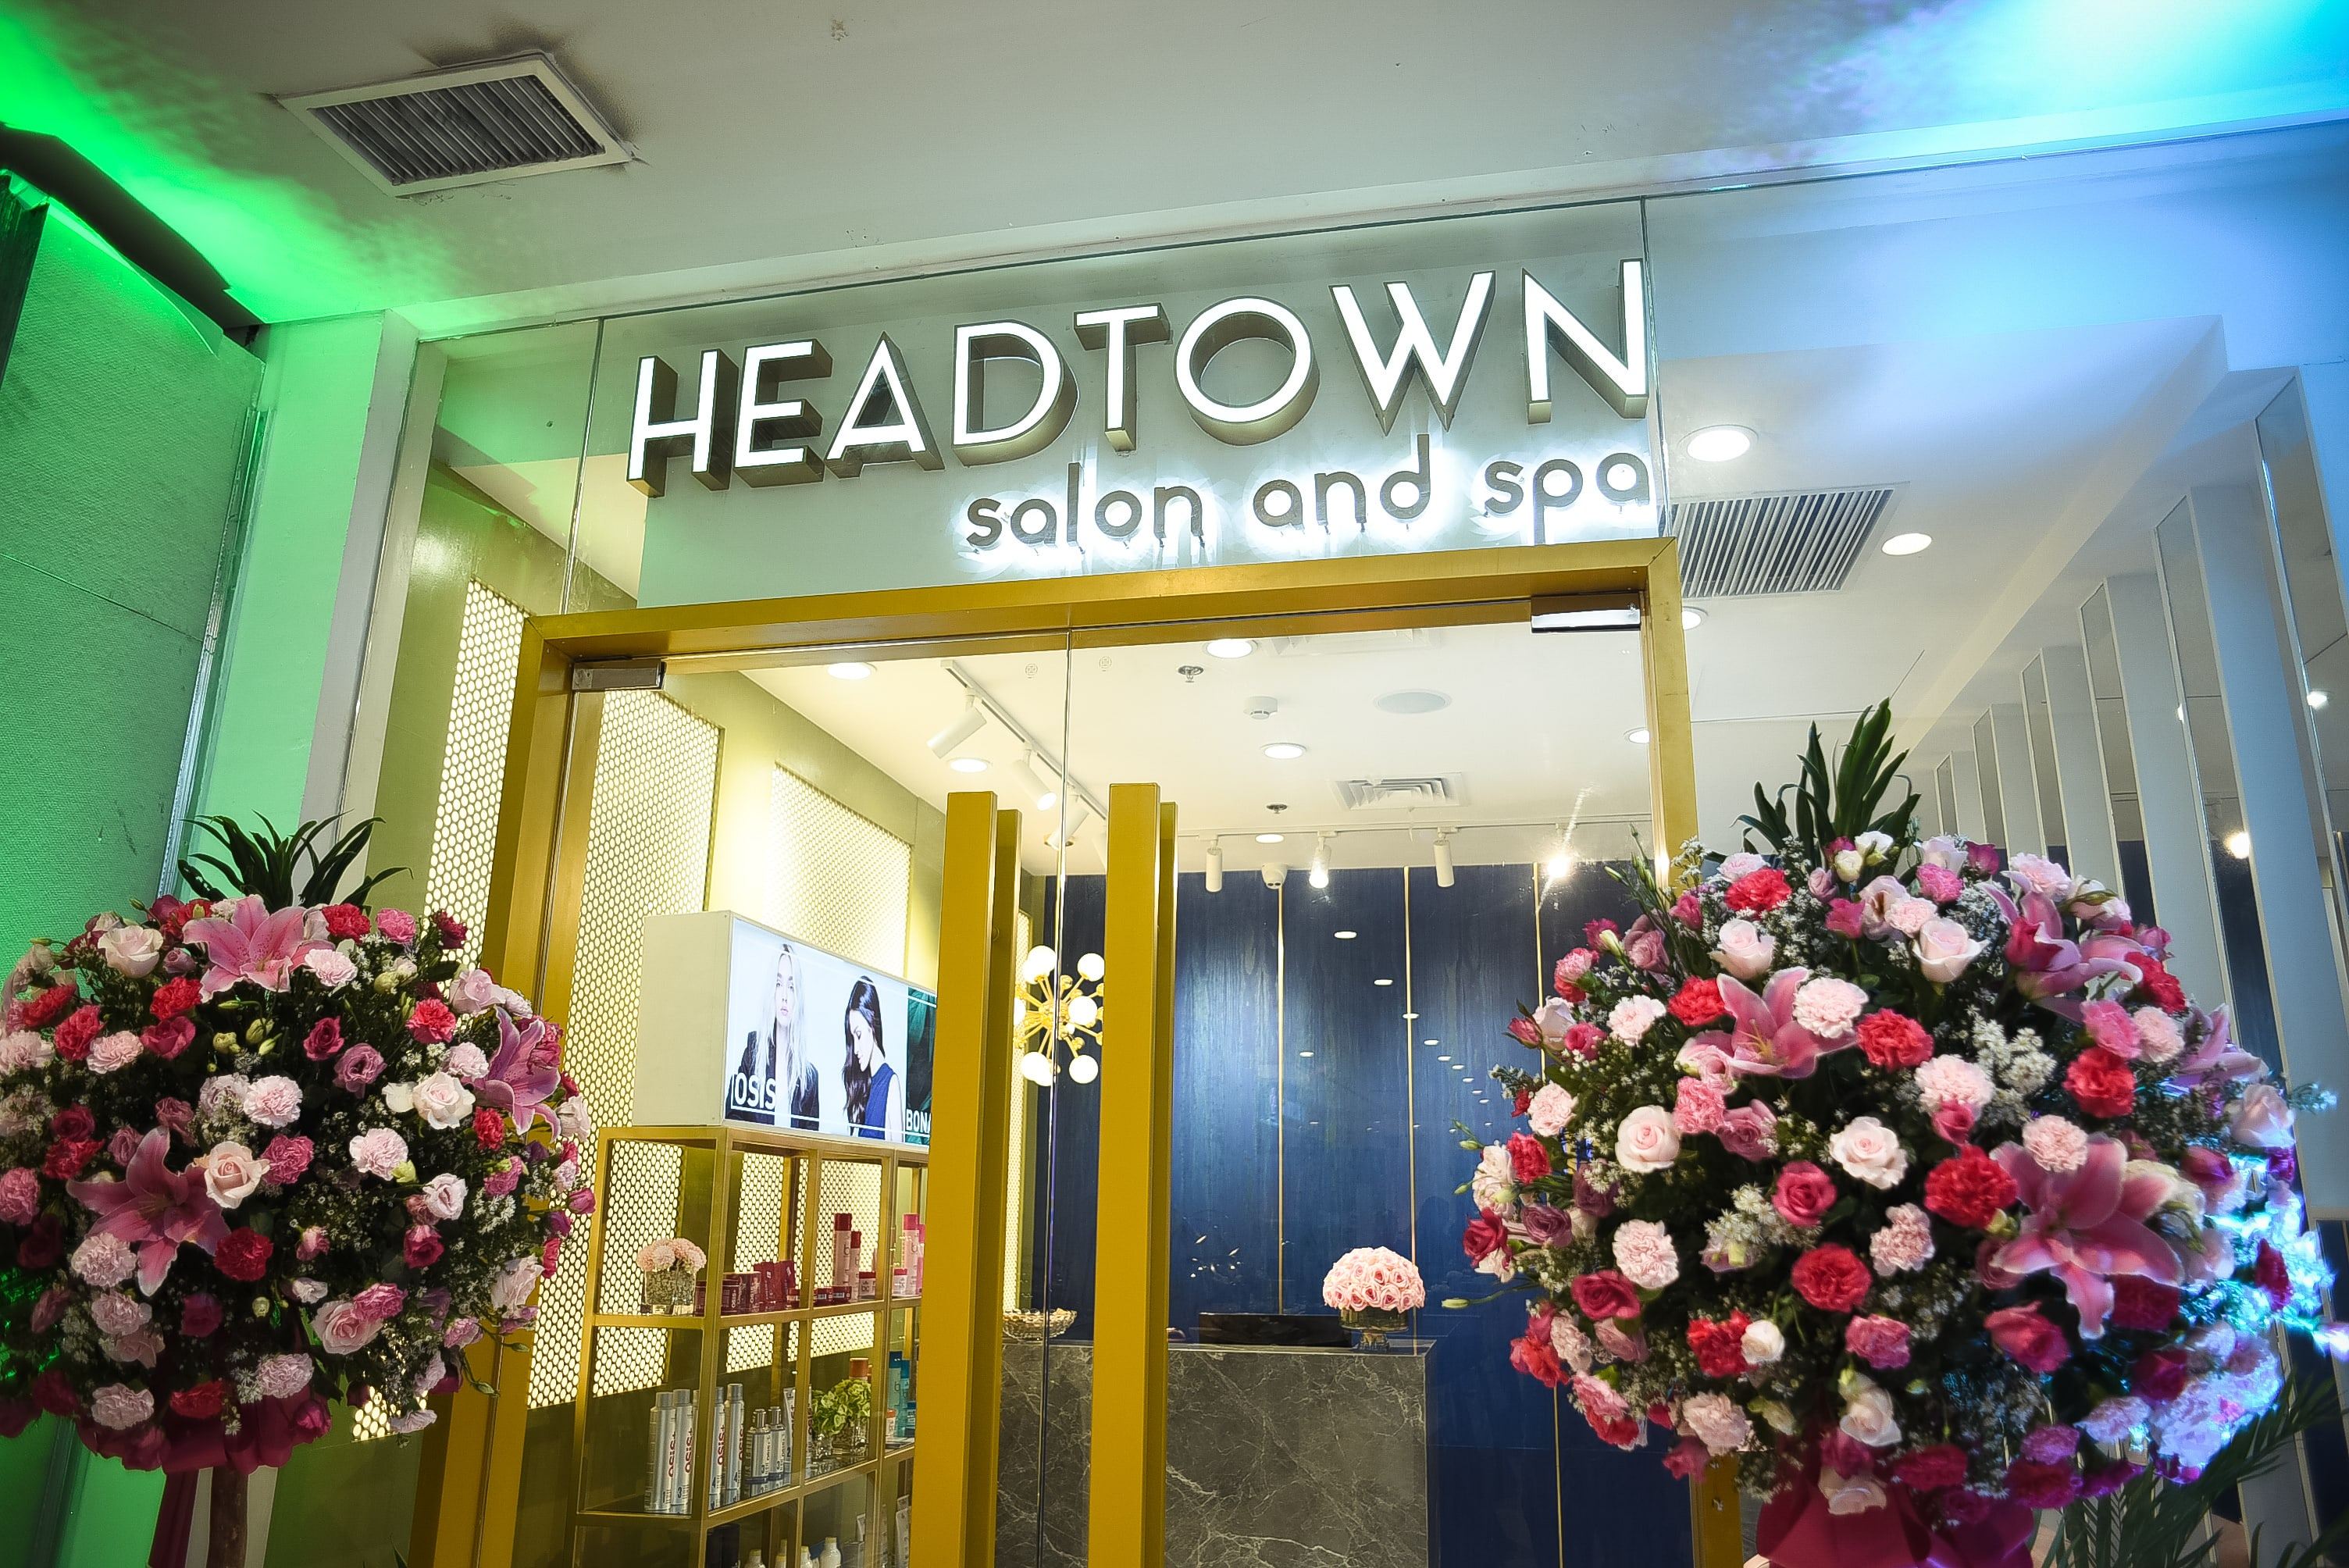 Get Your Crowning Moment at Headtown Salon and Spa